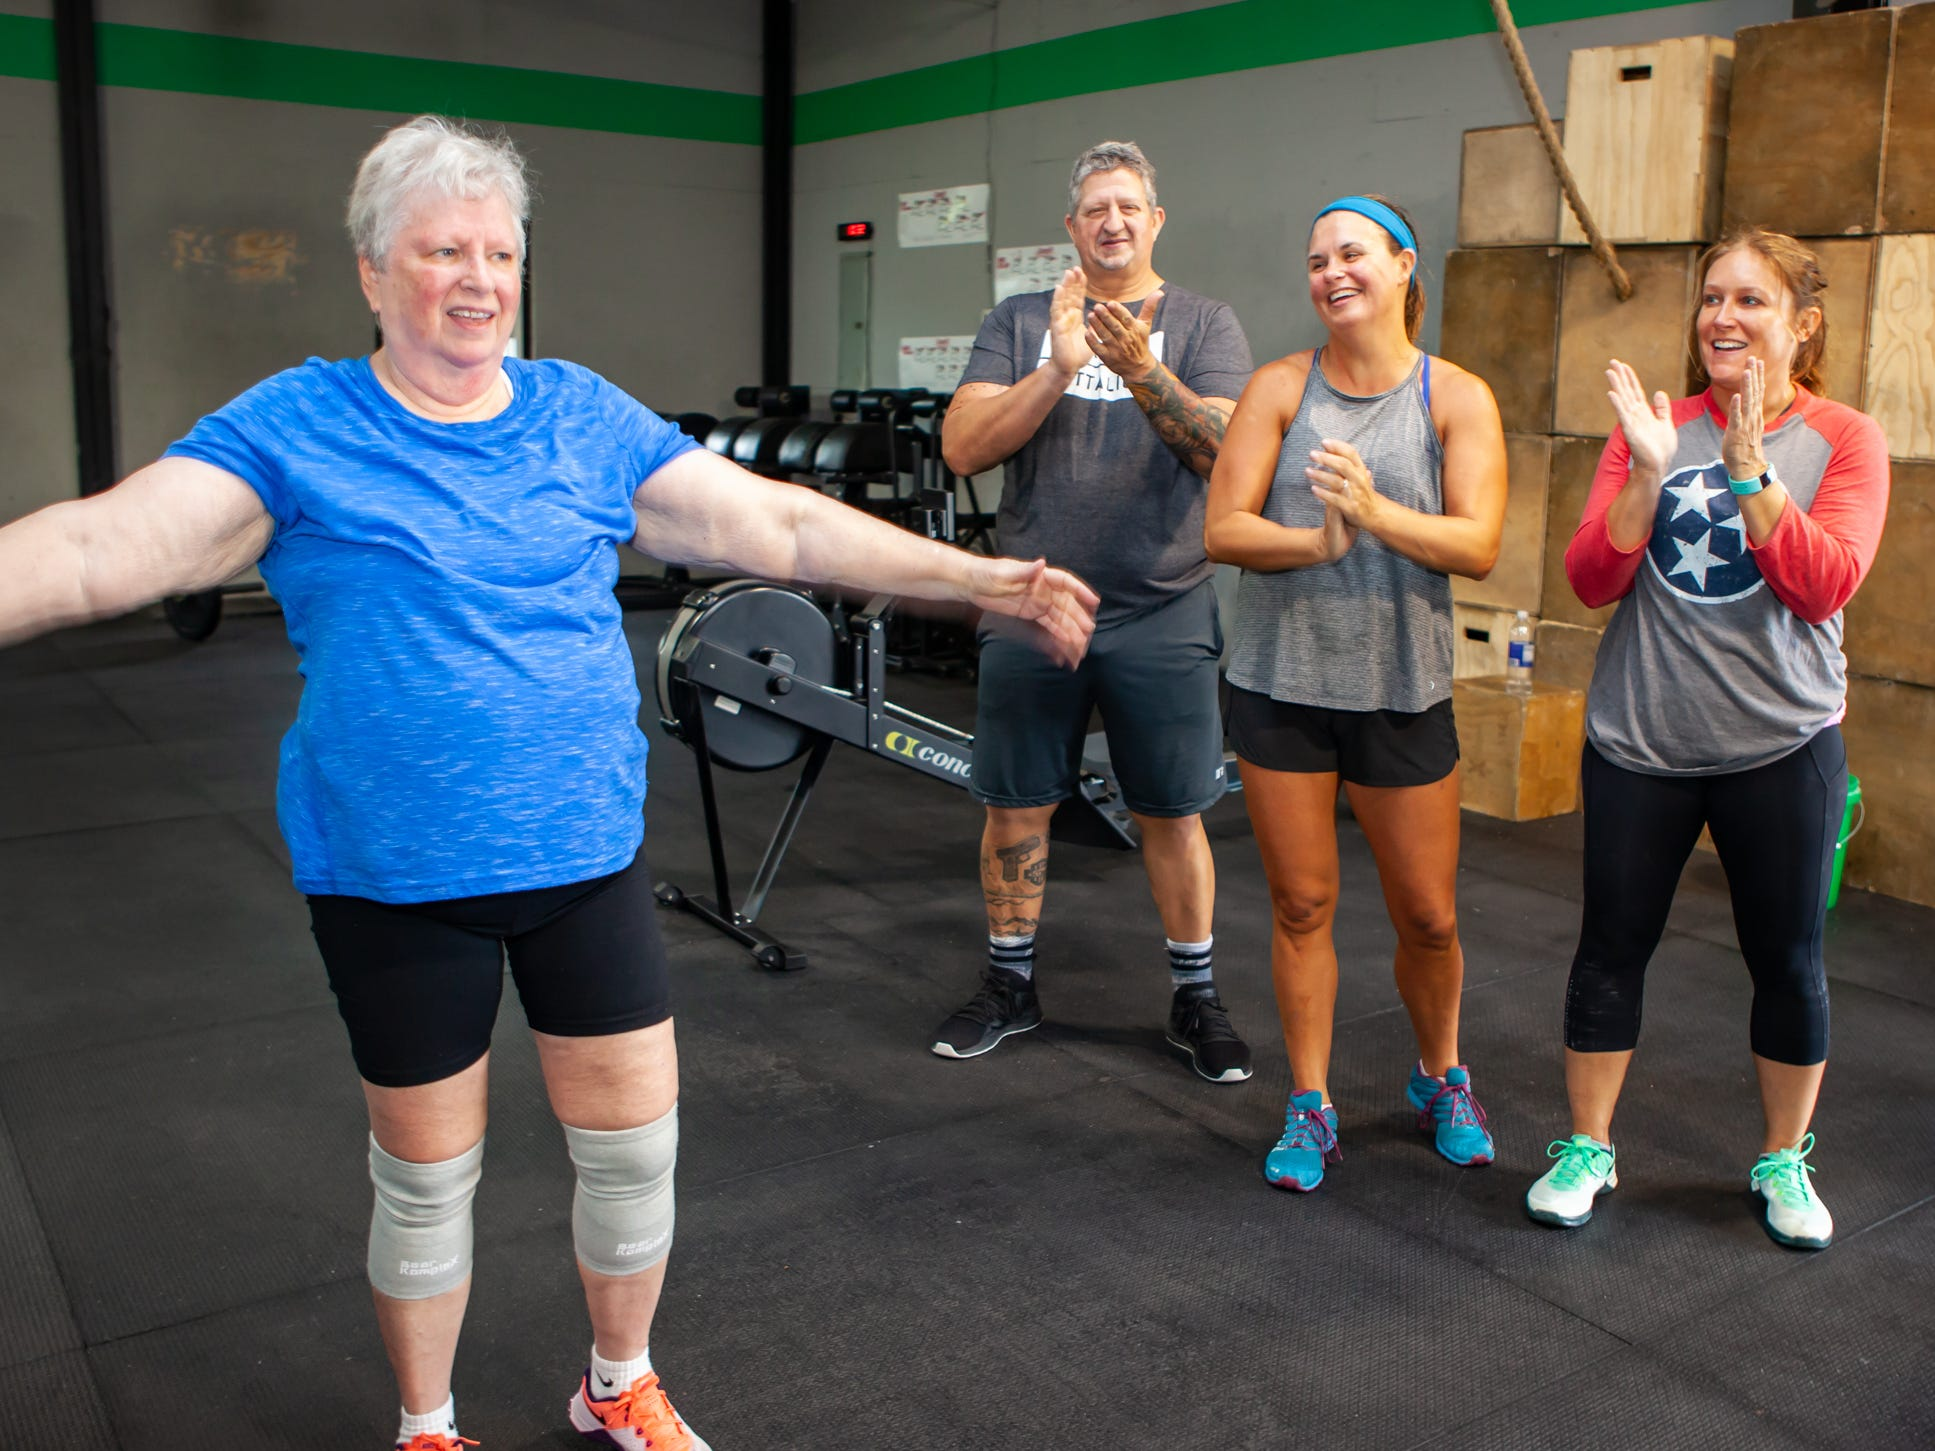 Lynda Miles gets a round of applause after finishing a workout at the CrossFit Barbell Batallion in downtown Murfreesboro.